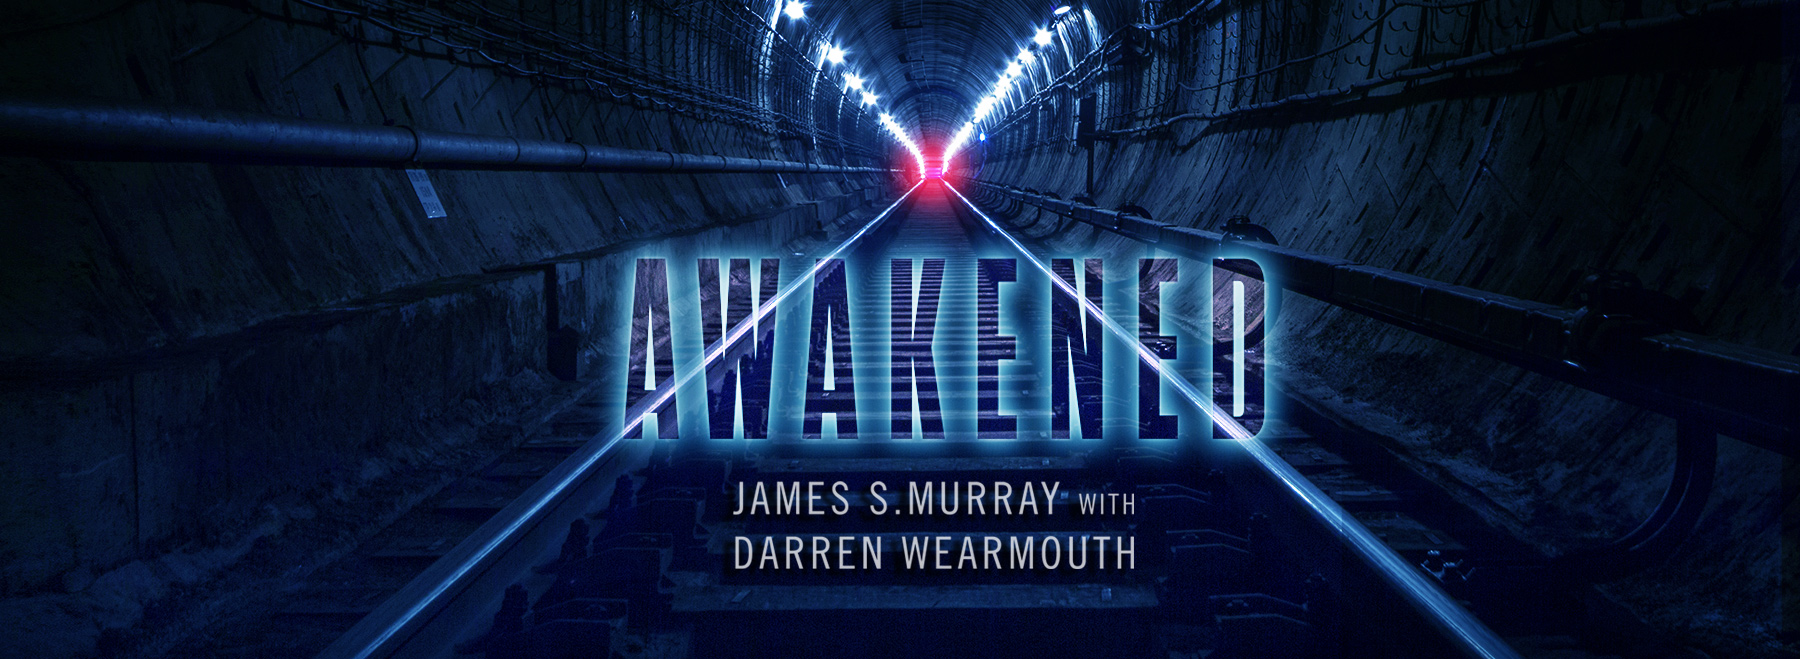 Awakened Novel logo